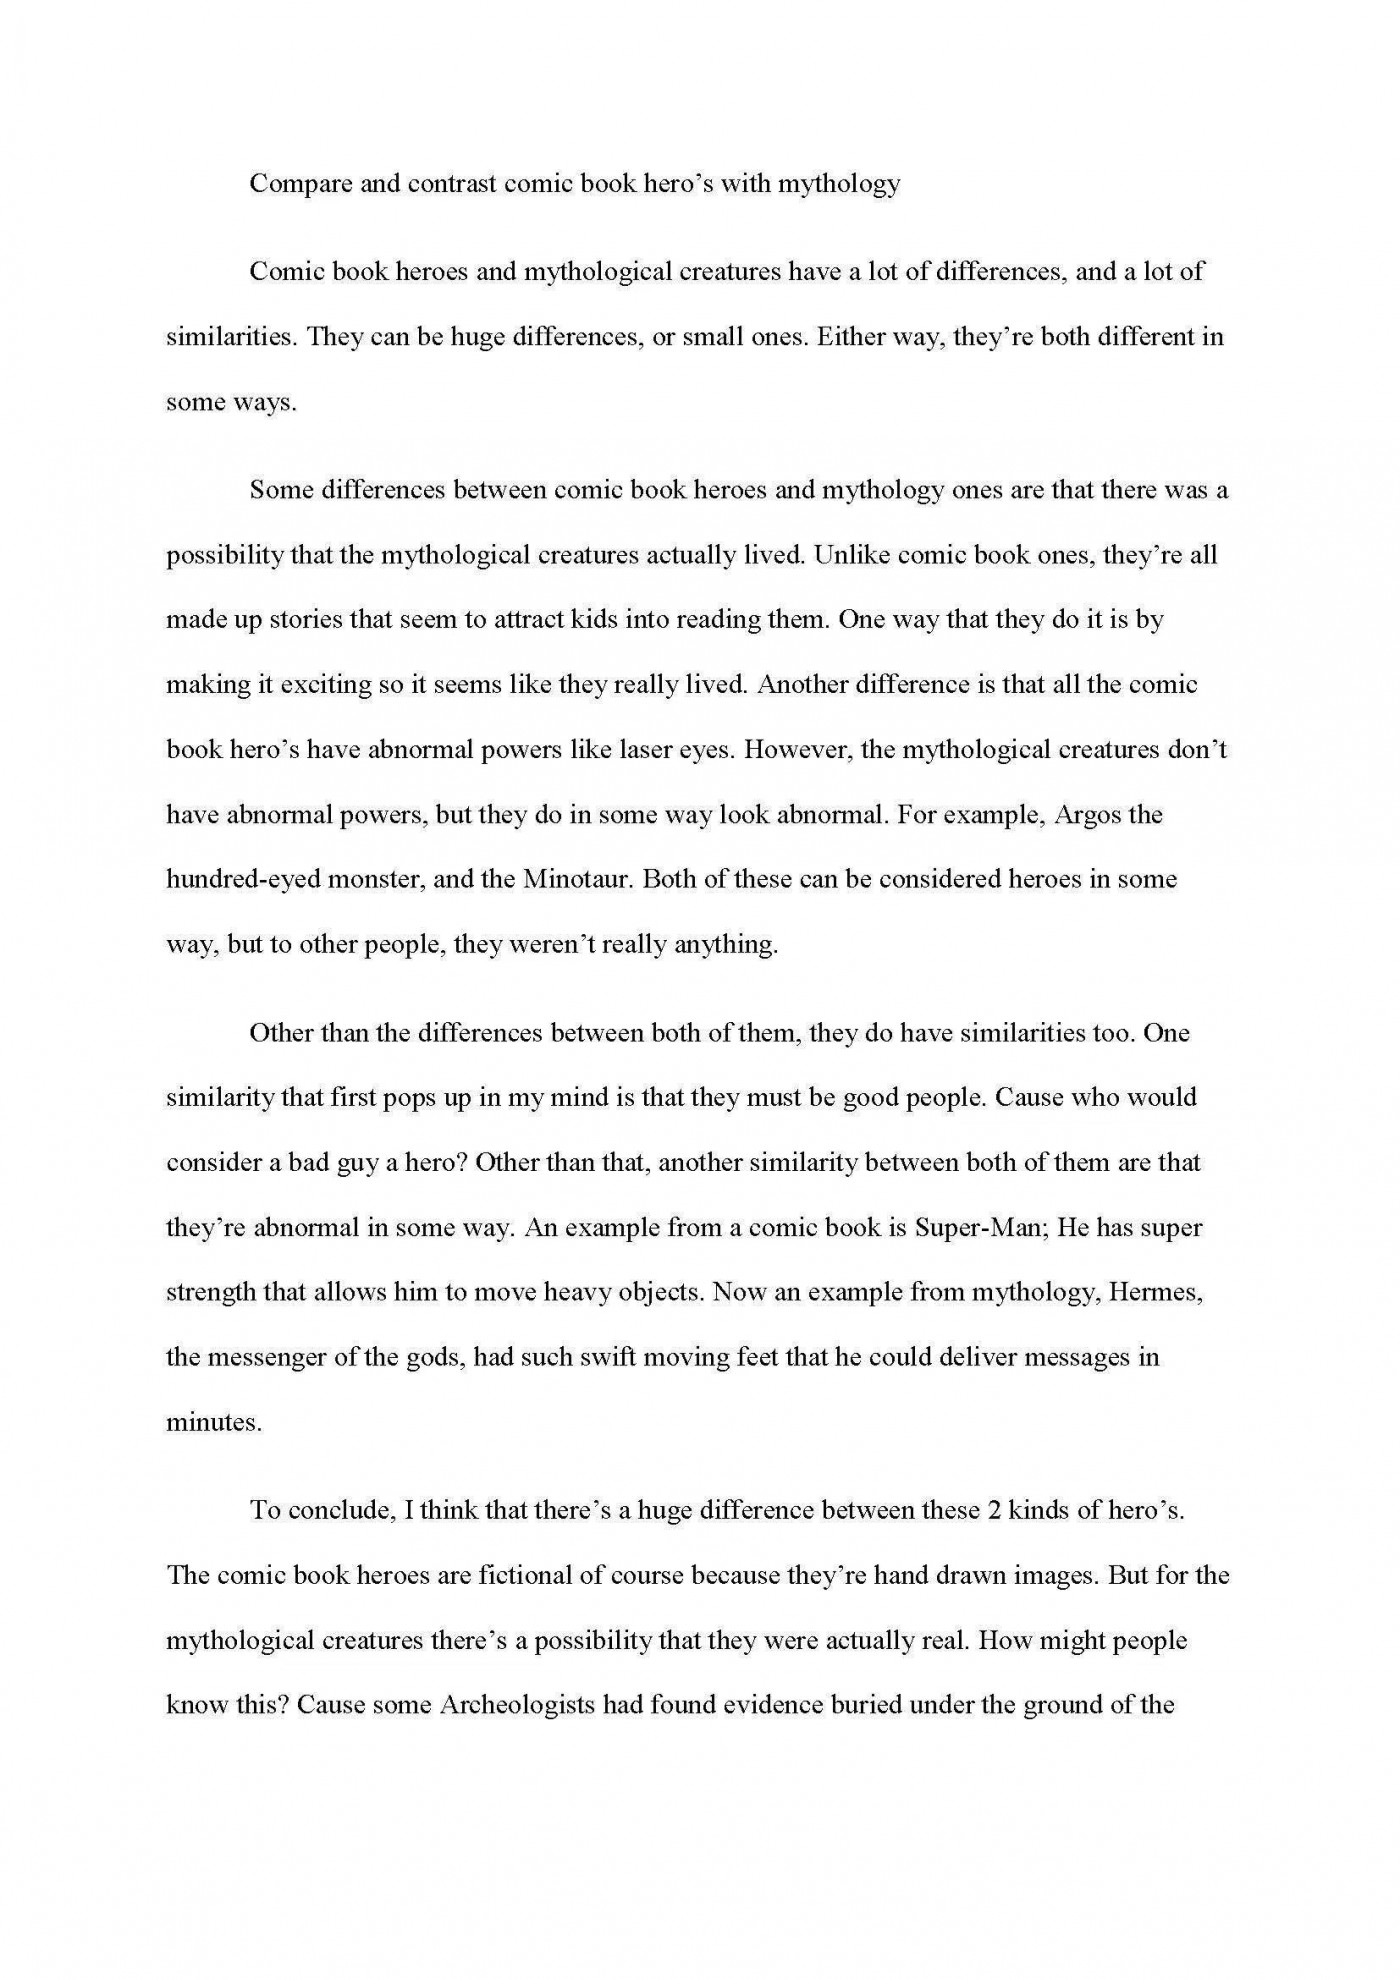 006 Excellent Compare And Contrast Essay Example College  For Topic Outline1400